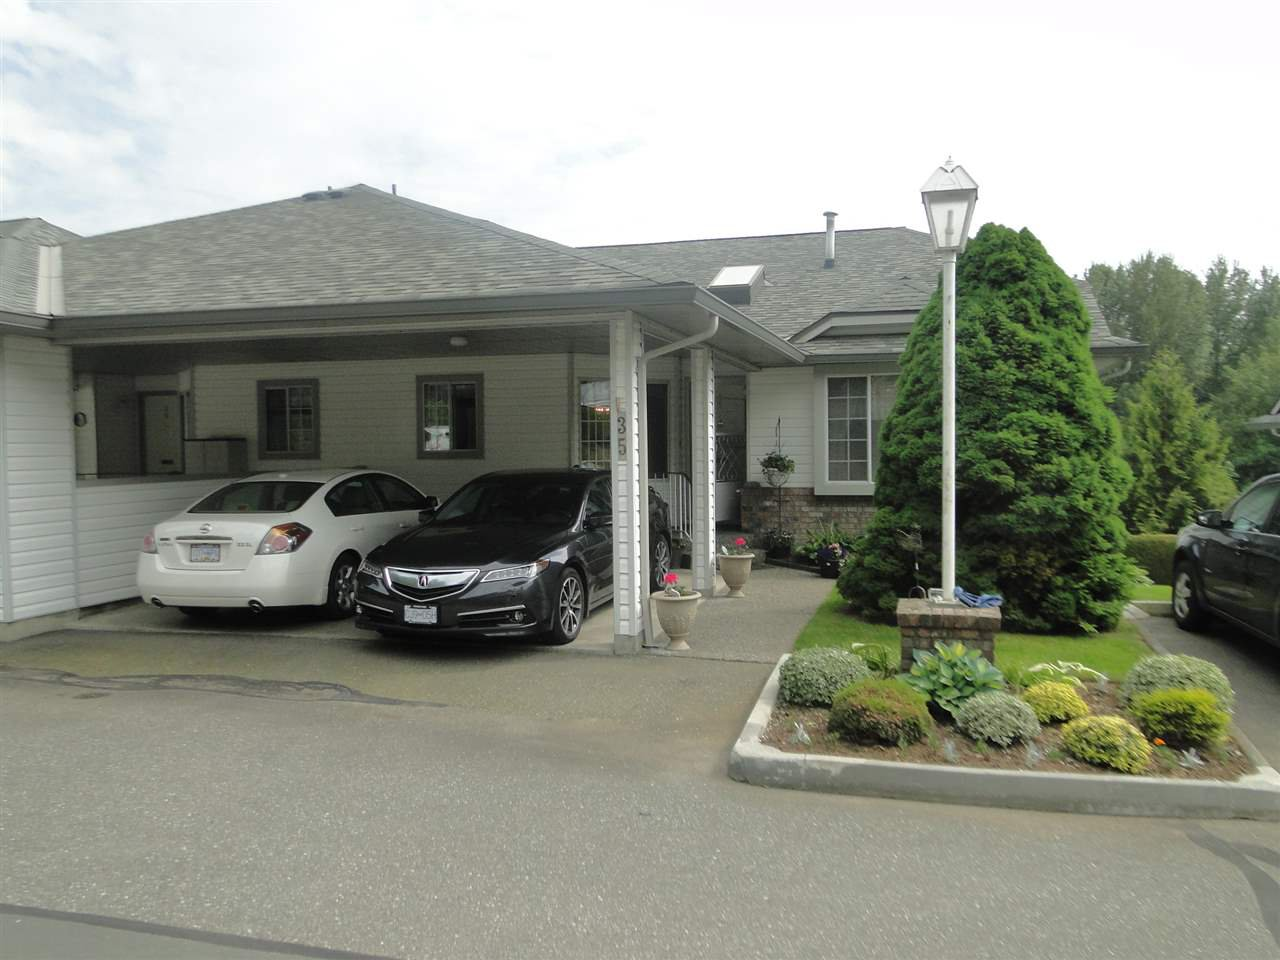 """Main Photo: 35 3351 HORN Street in Abbotsford: Central Abbotsford Townhouse for sale in """"EVANSBROOK ESTATES"""" : MLS®# R2271364"""